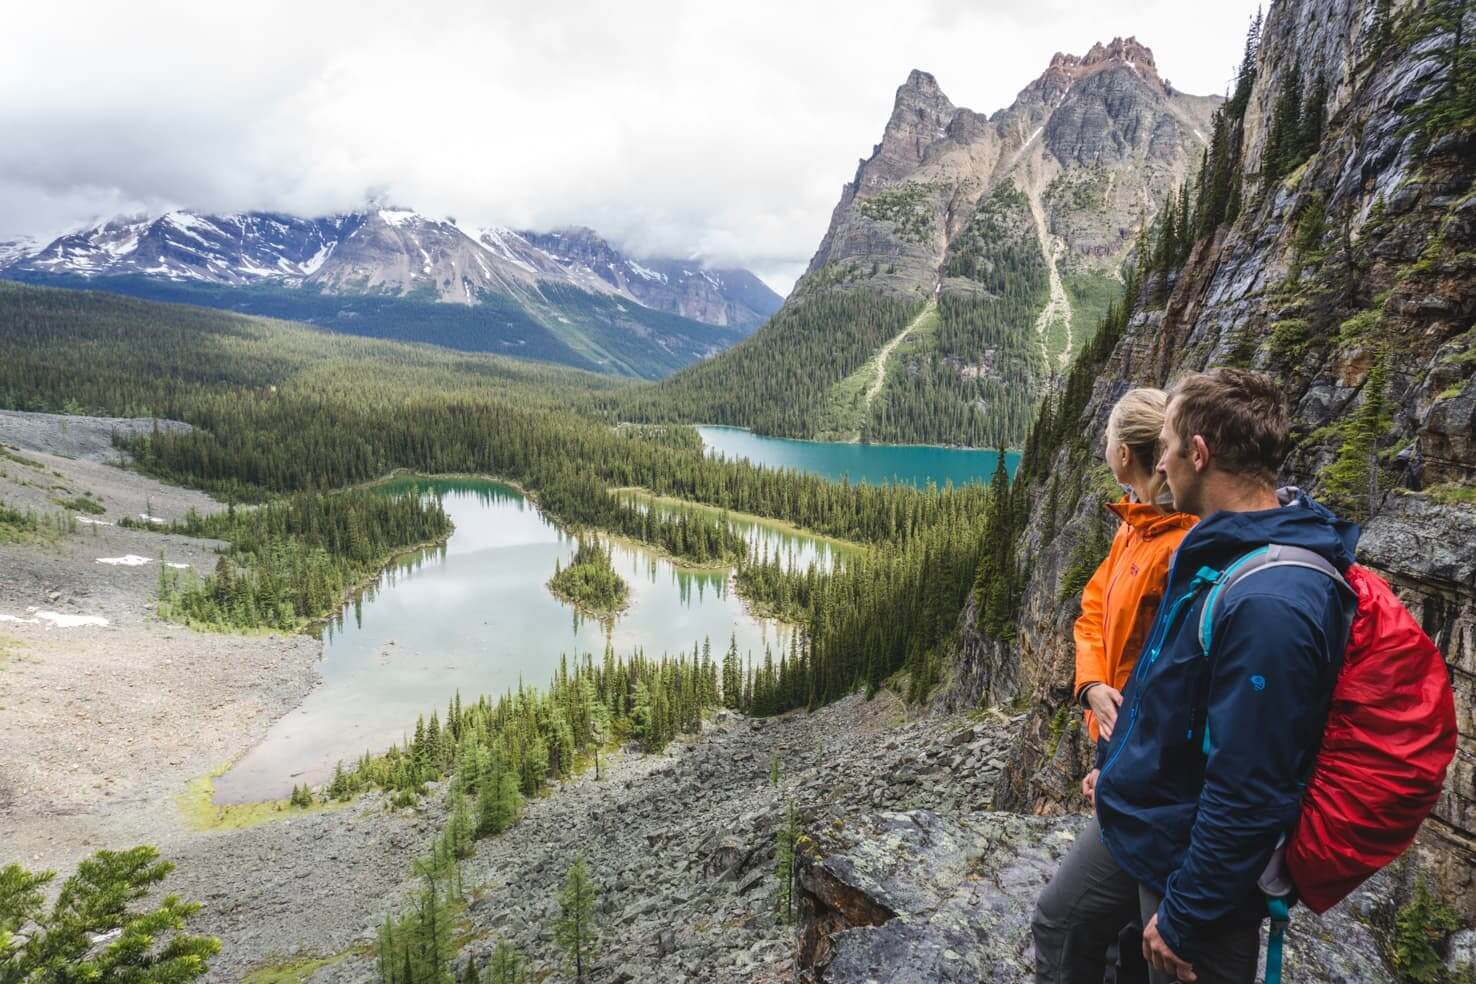 Adventure travel guide to Yoho National Park - hiking in Lake O'Hara area